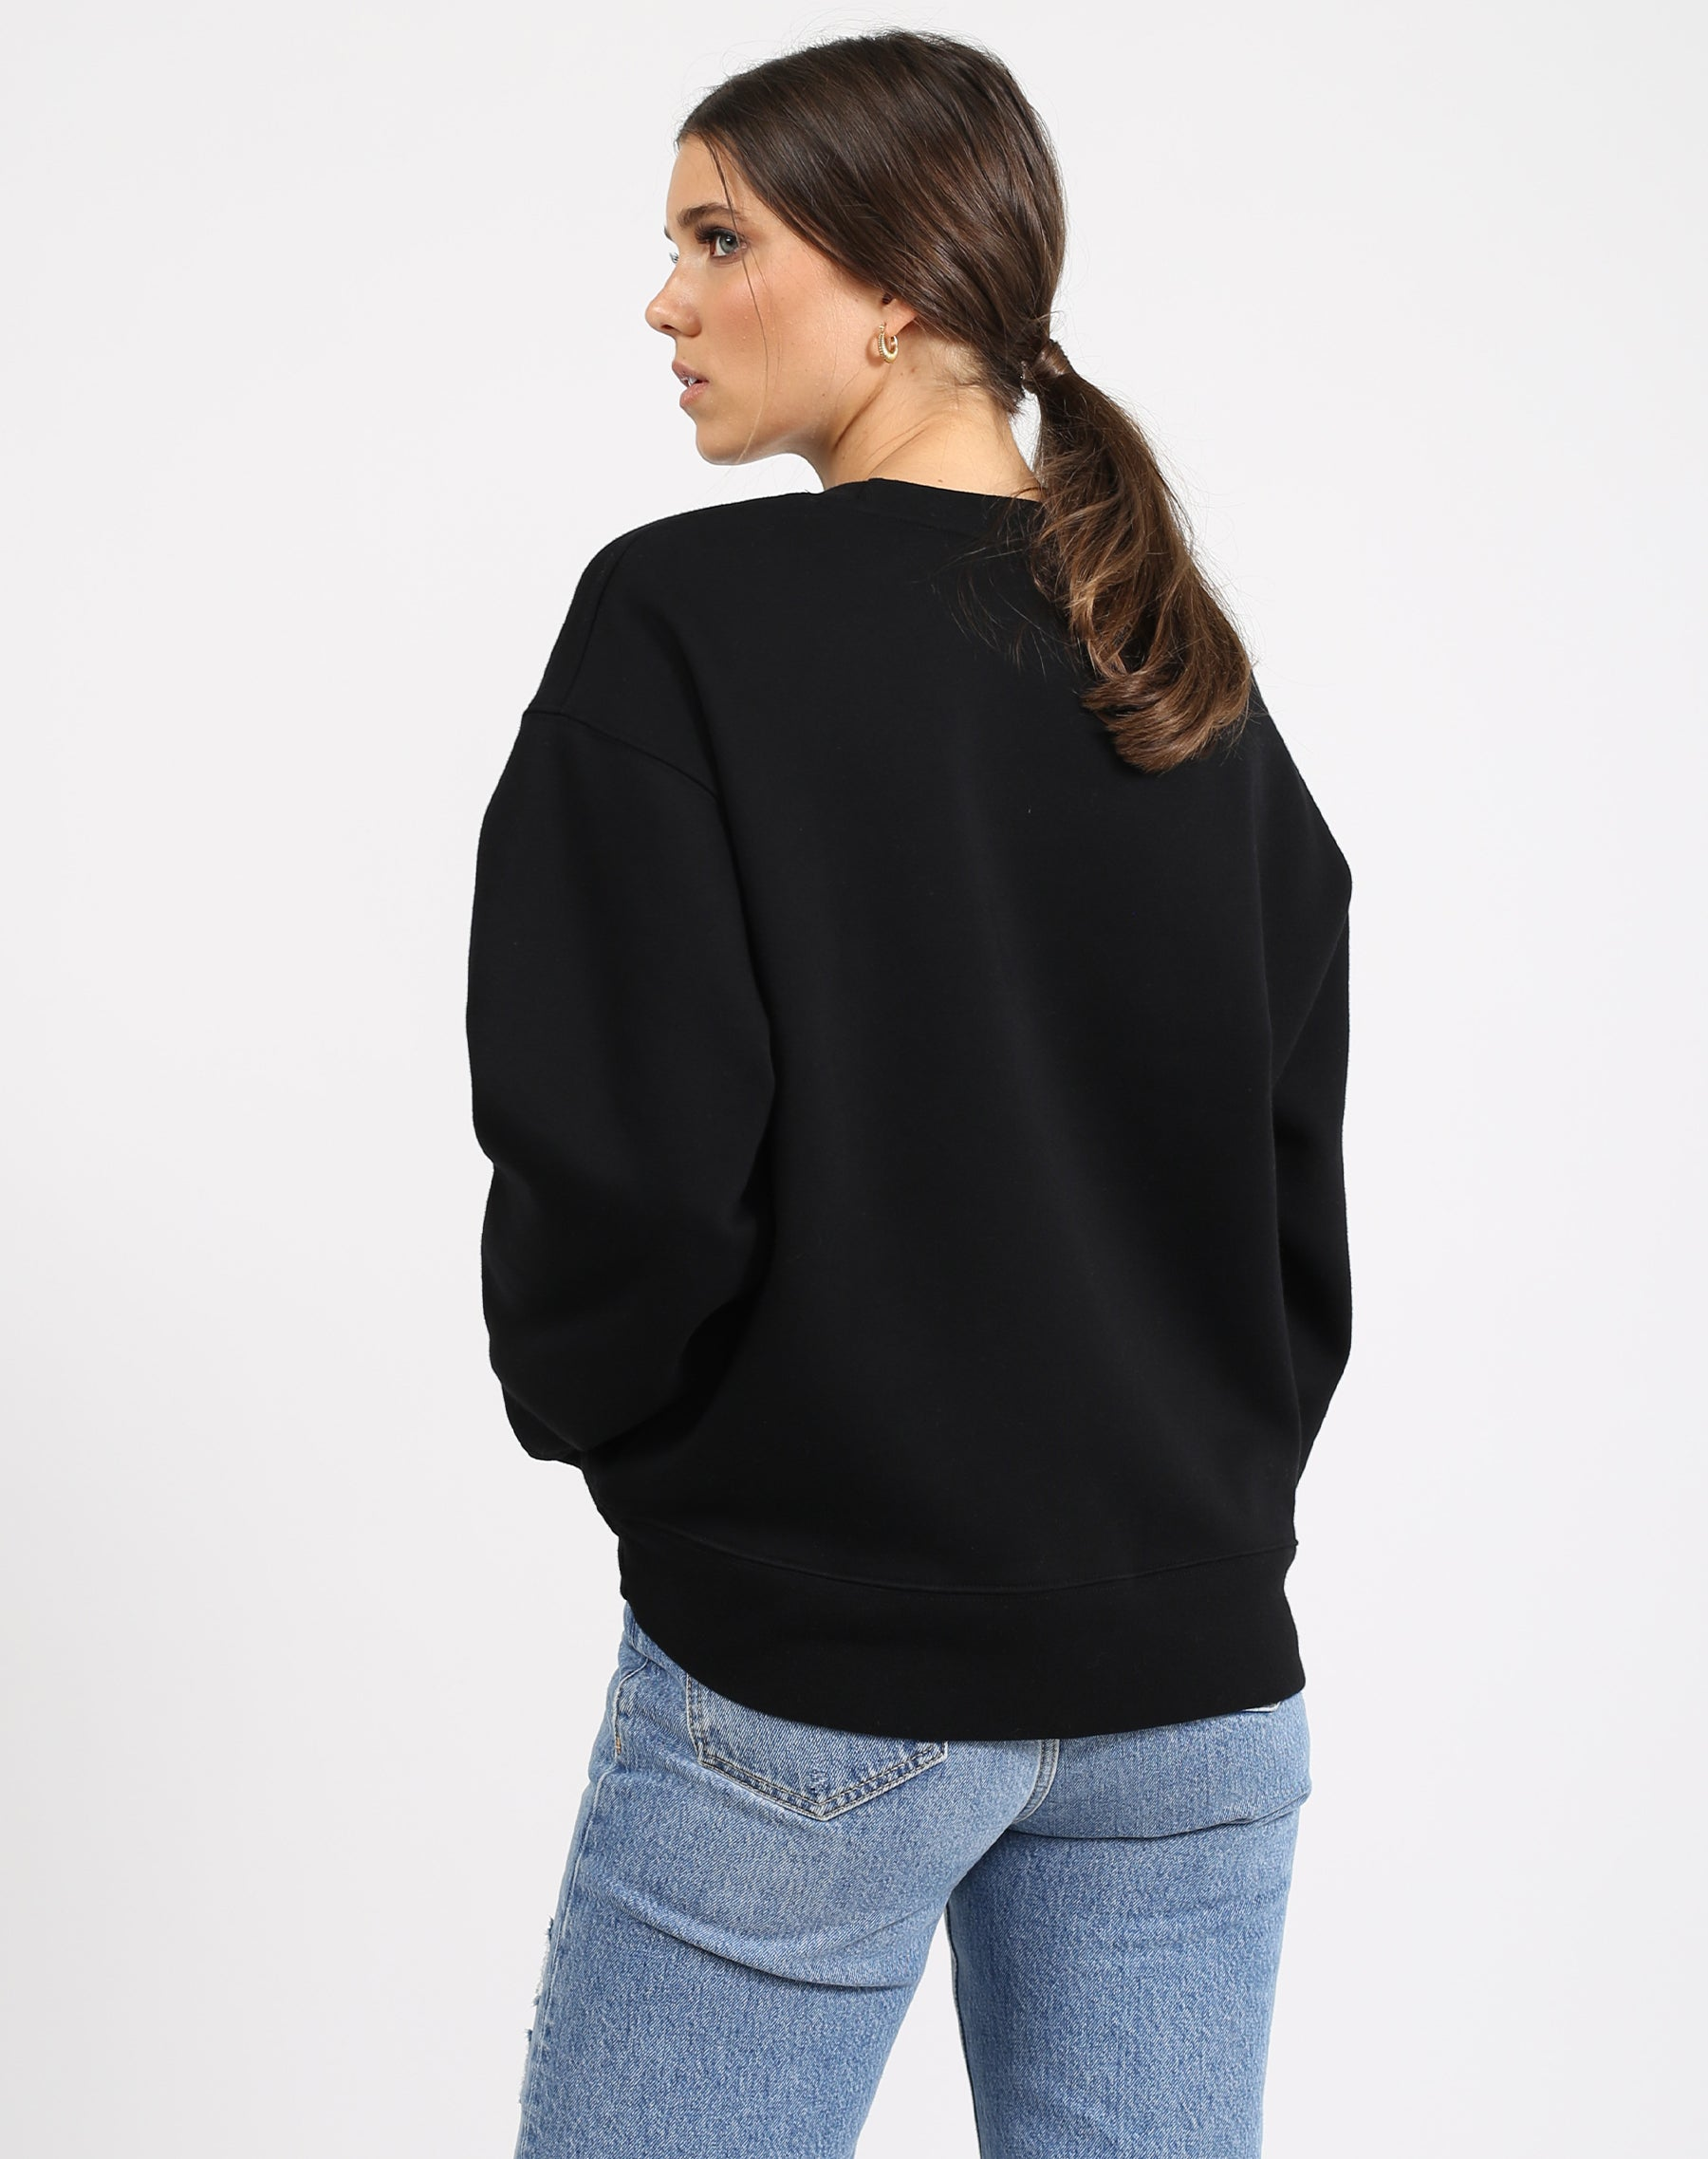 This is an image the back of a model wearing the Redhead Zebra Varsity Step Sister Crew Neck Sweatshirt in Black by Brunette the Label.